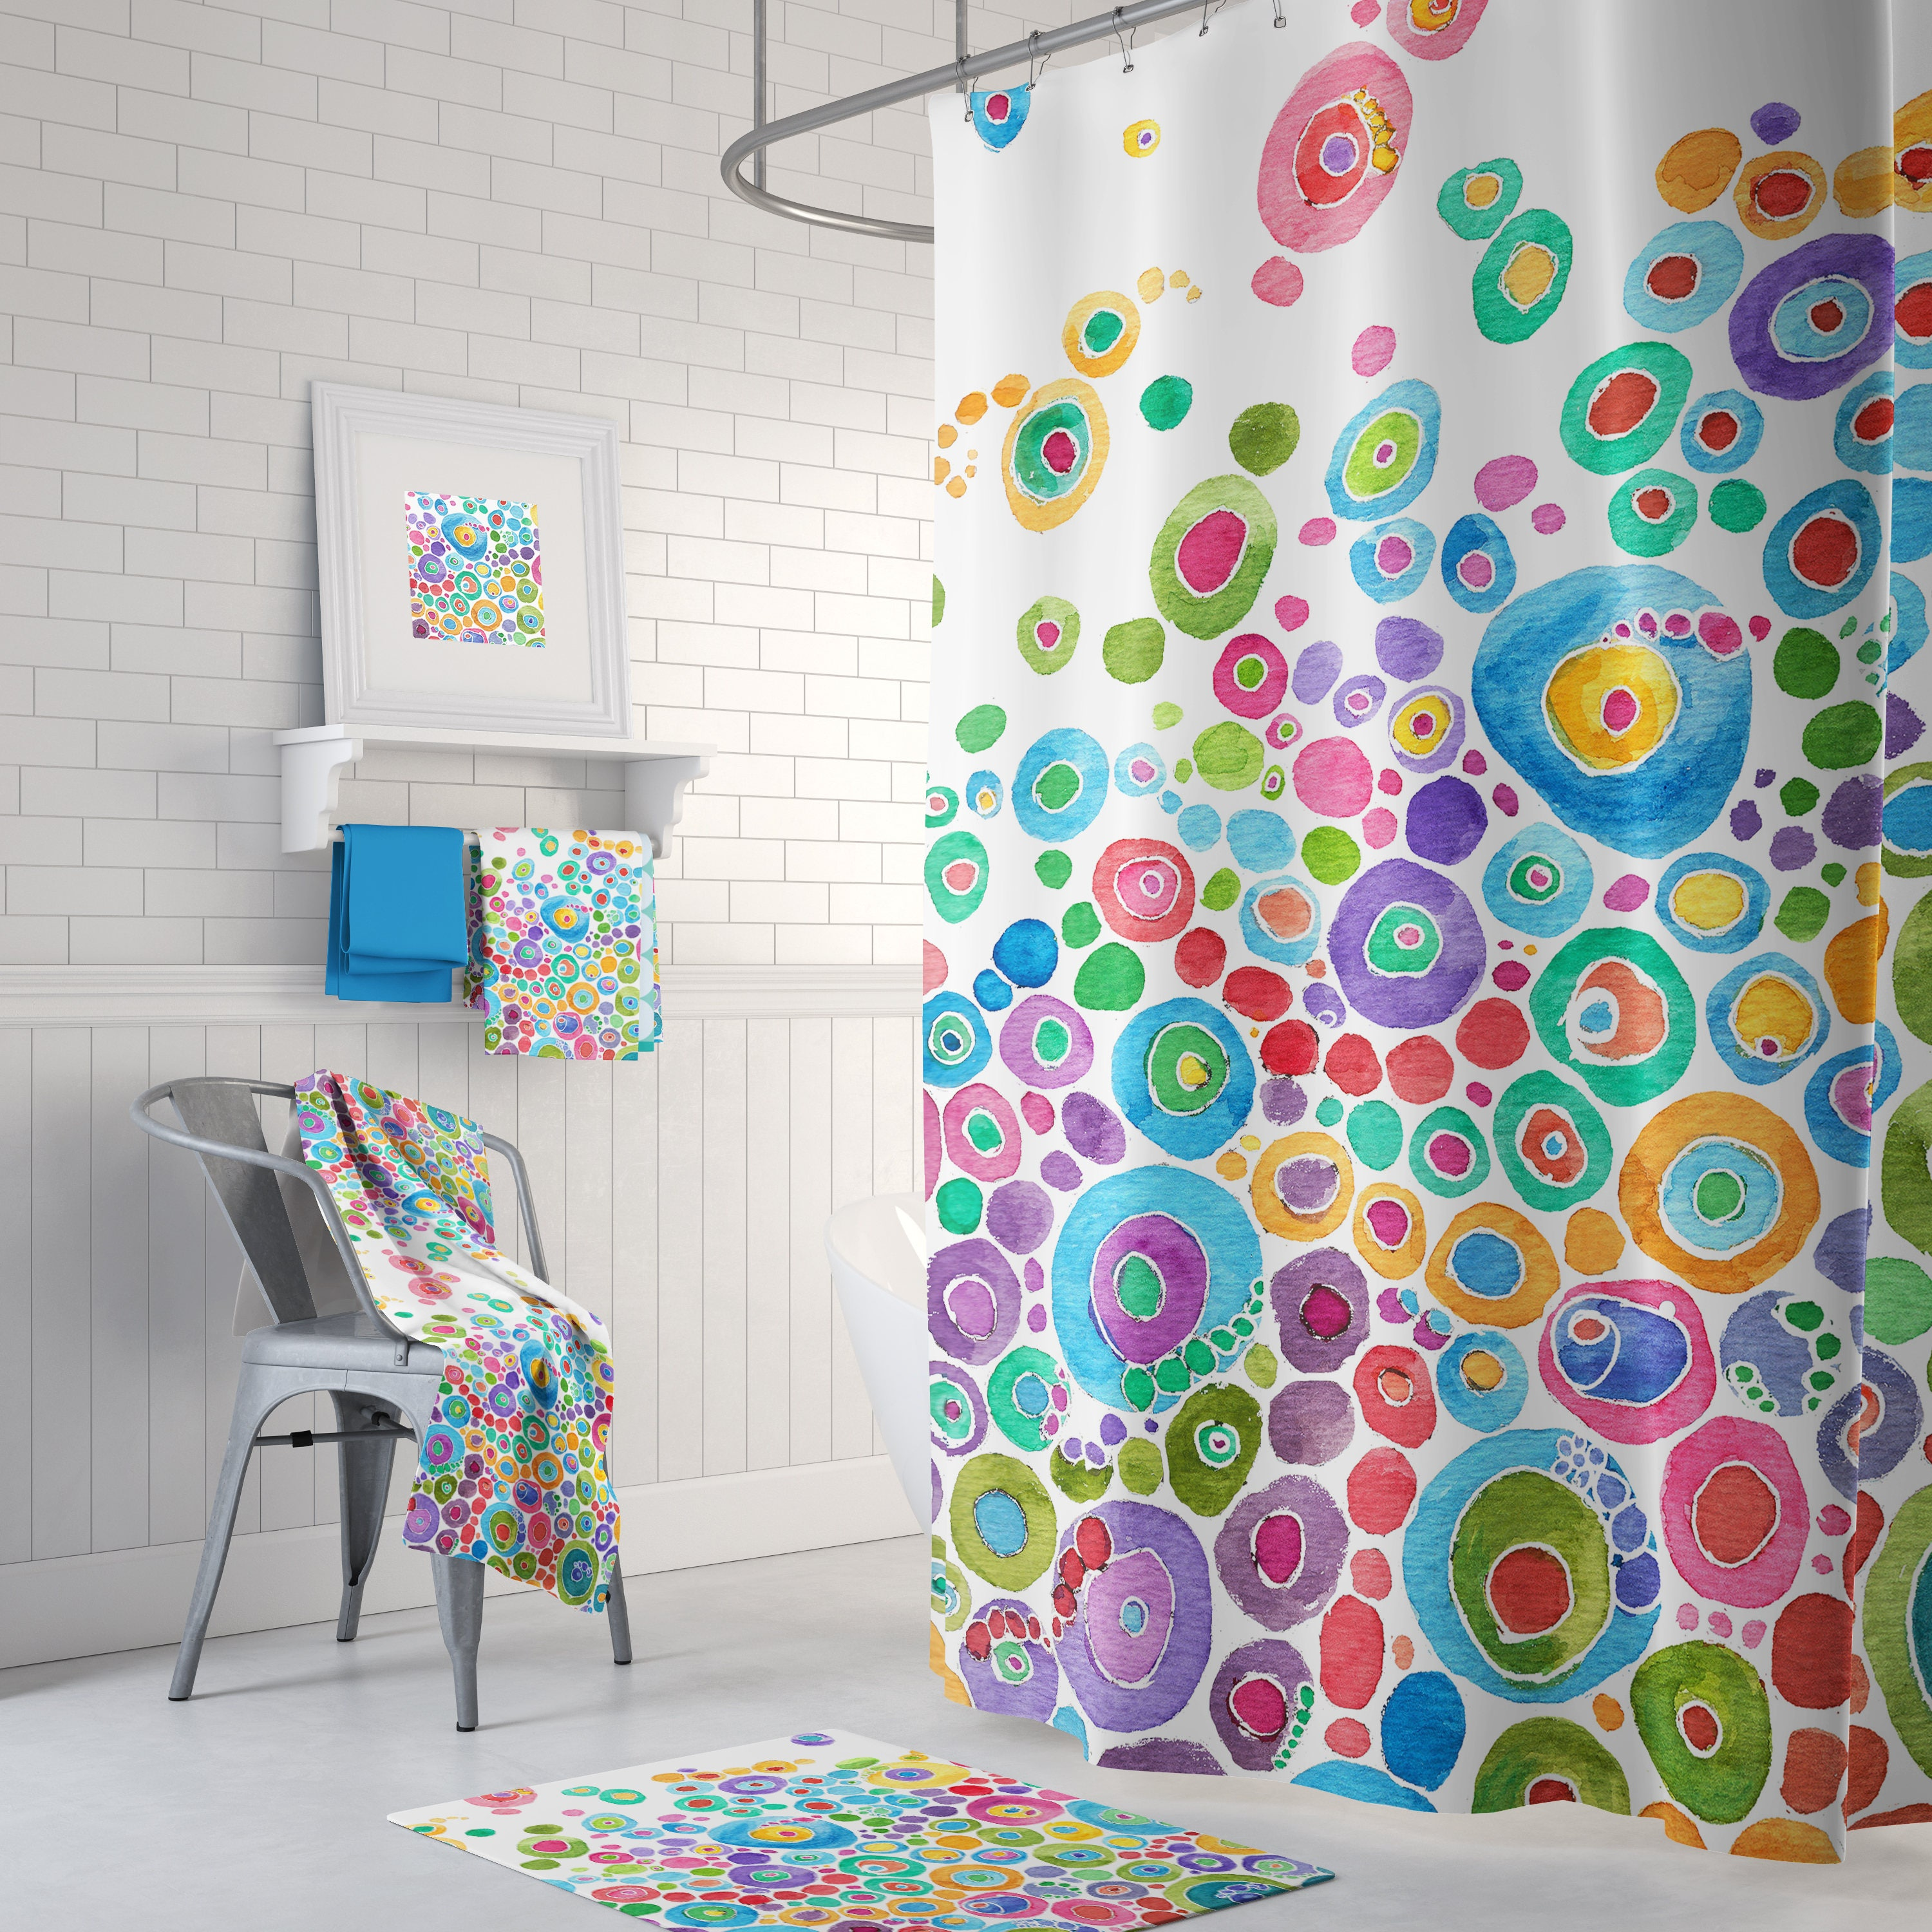 Colorful shower curtain - Details Colorful Shower Curtain